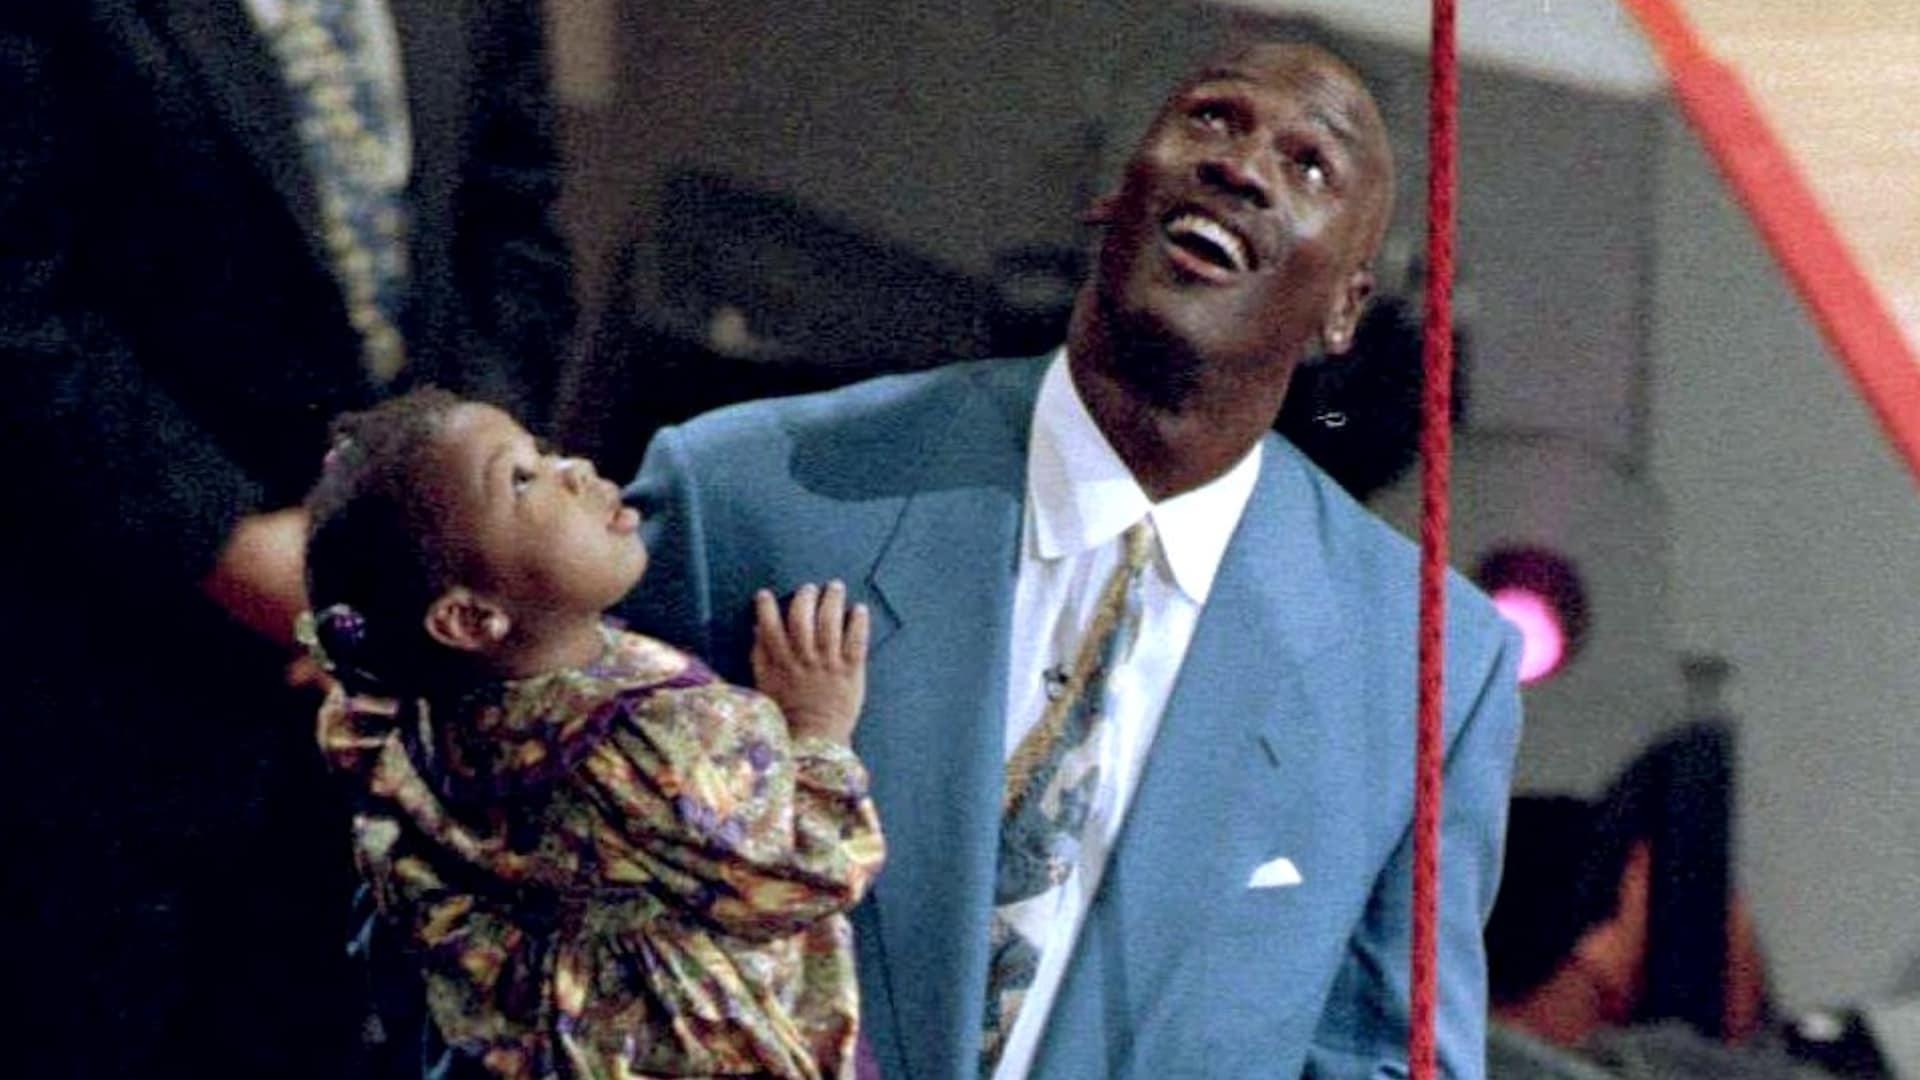 Michael Jordan's daughter Jasmine learning more about her father from 'The Last Dance'